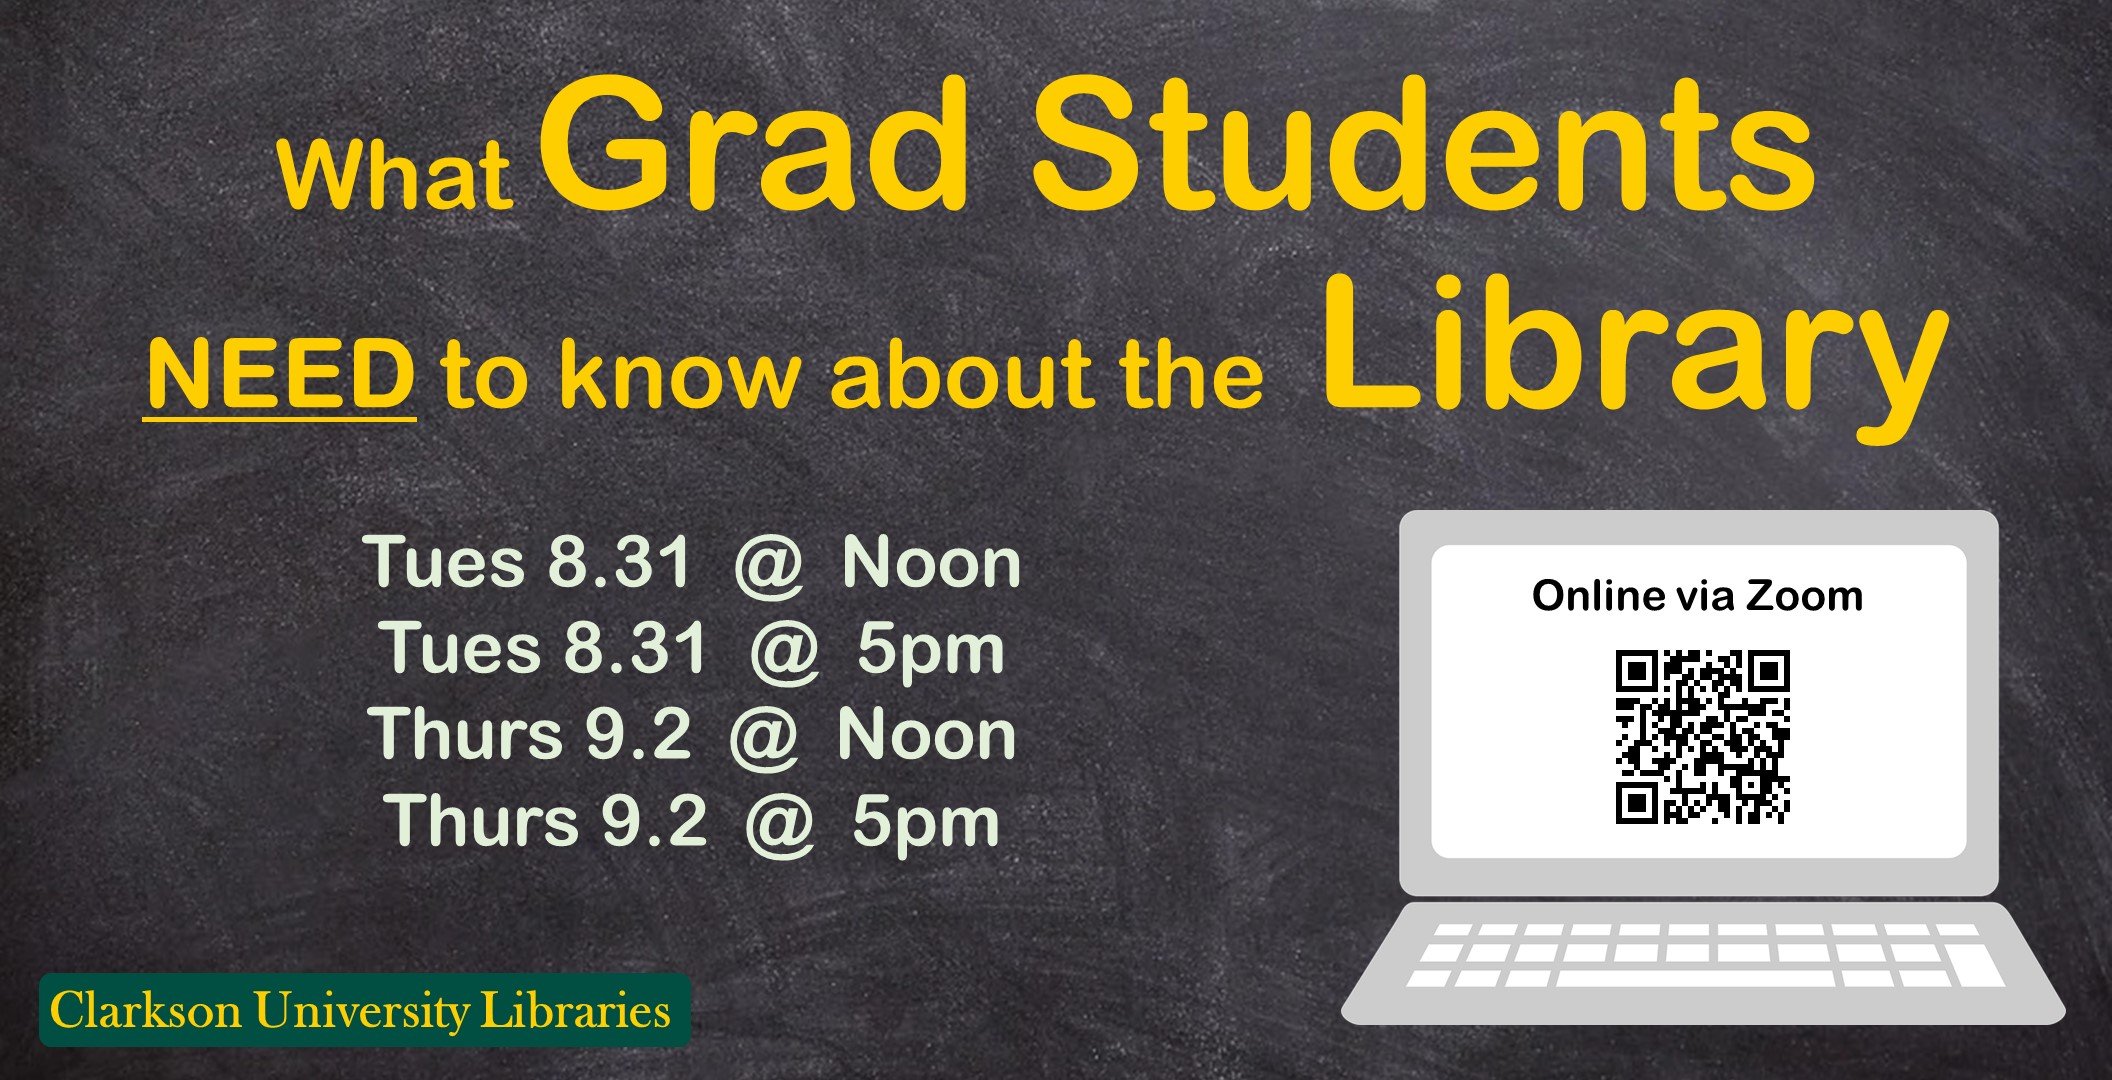 Graduate Workshop Tomorrow: What Graduate Students Need to Know About the Library